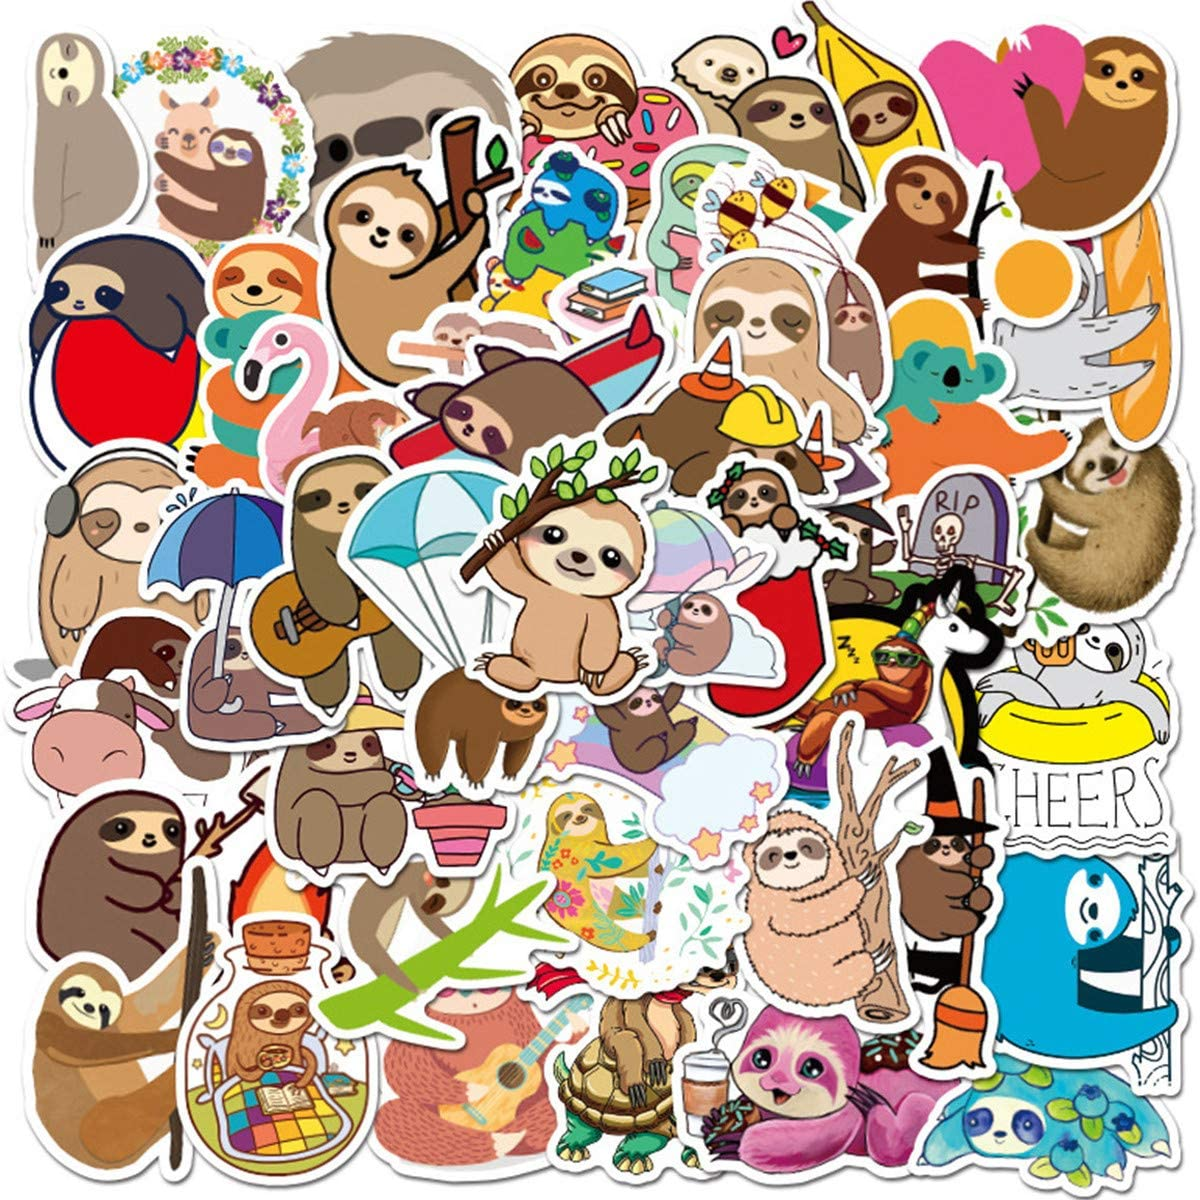 50Pack Cute Cartoon Sloth Stickers Set Kids Friendly Sticker Decals for Water Bottle Laptop Cellphone Bicycle Motorcycle Car Bumper Luggage Travel Case. Etc (Sloth)